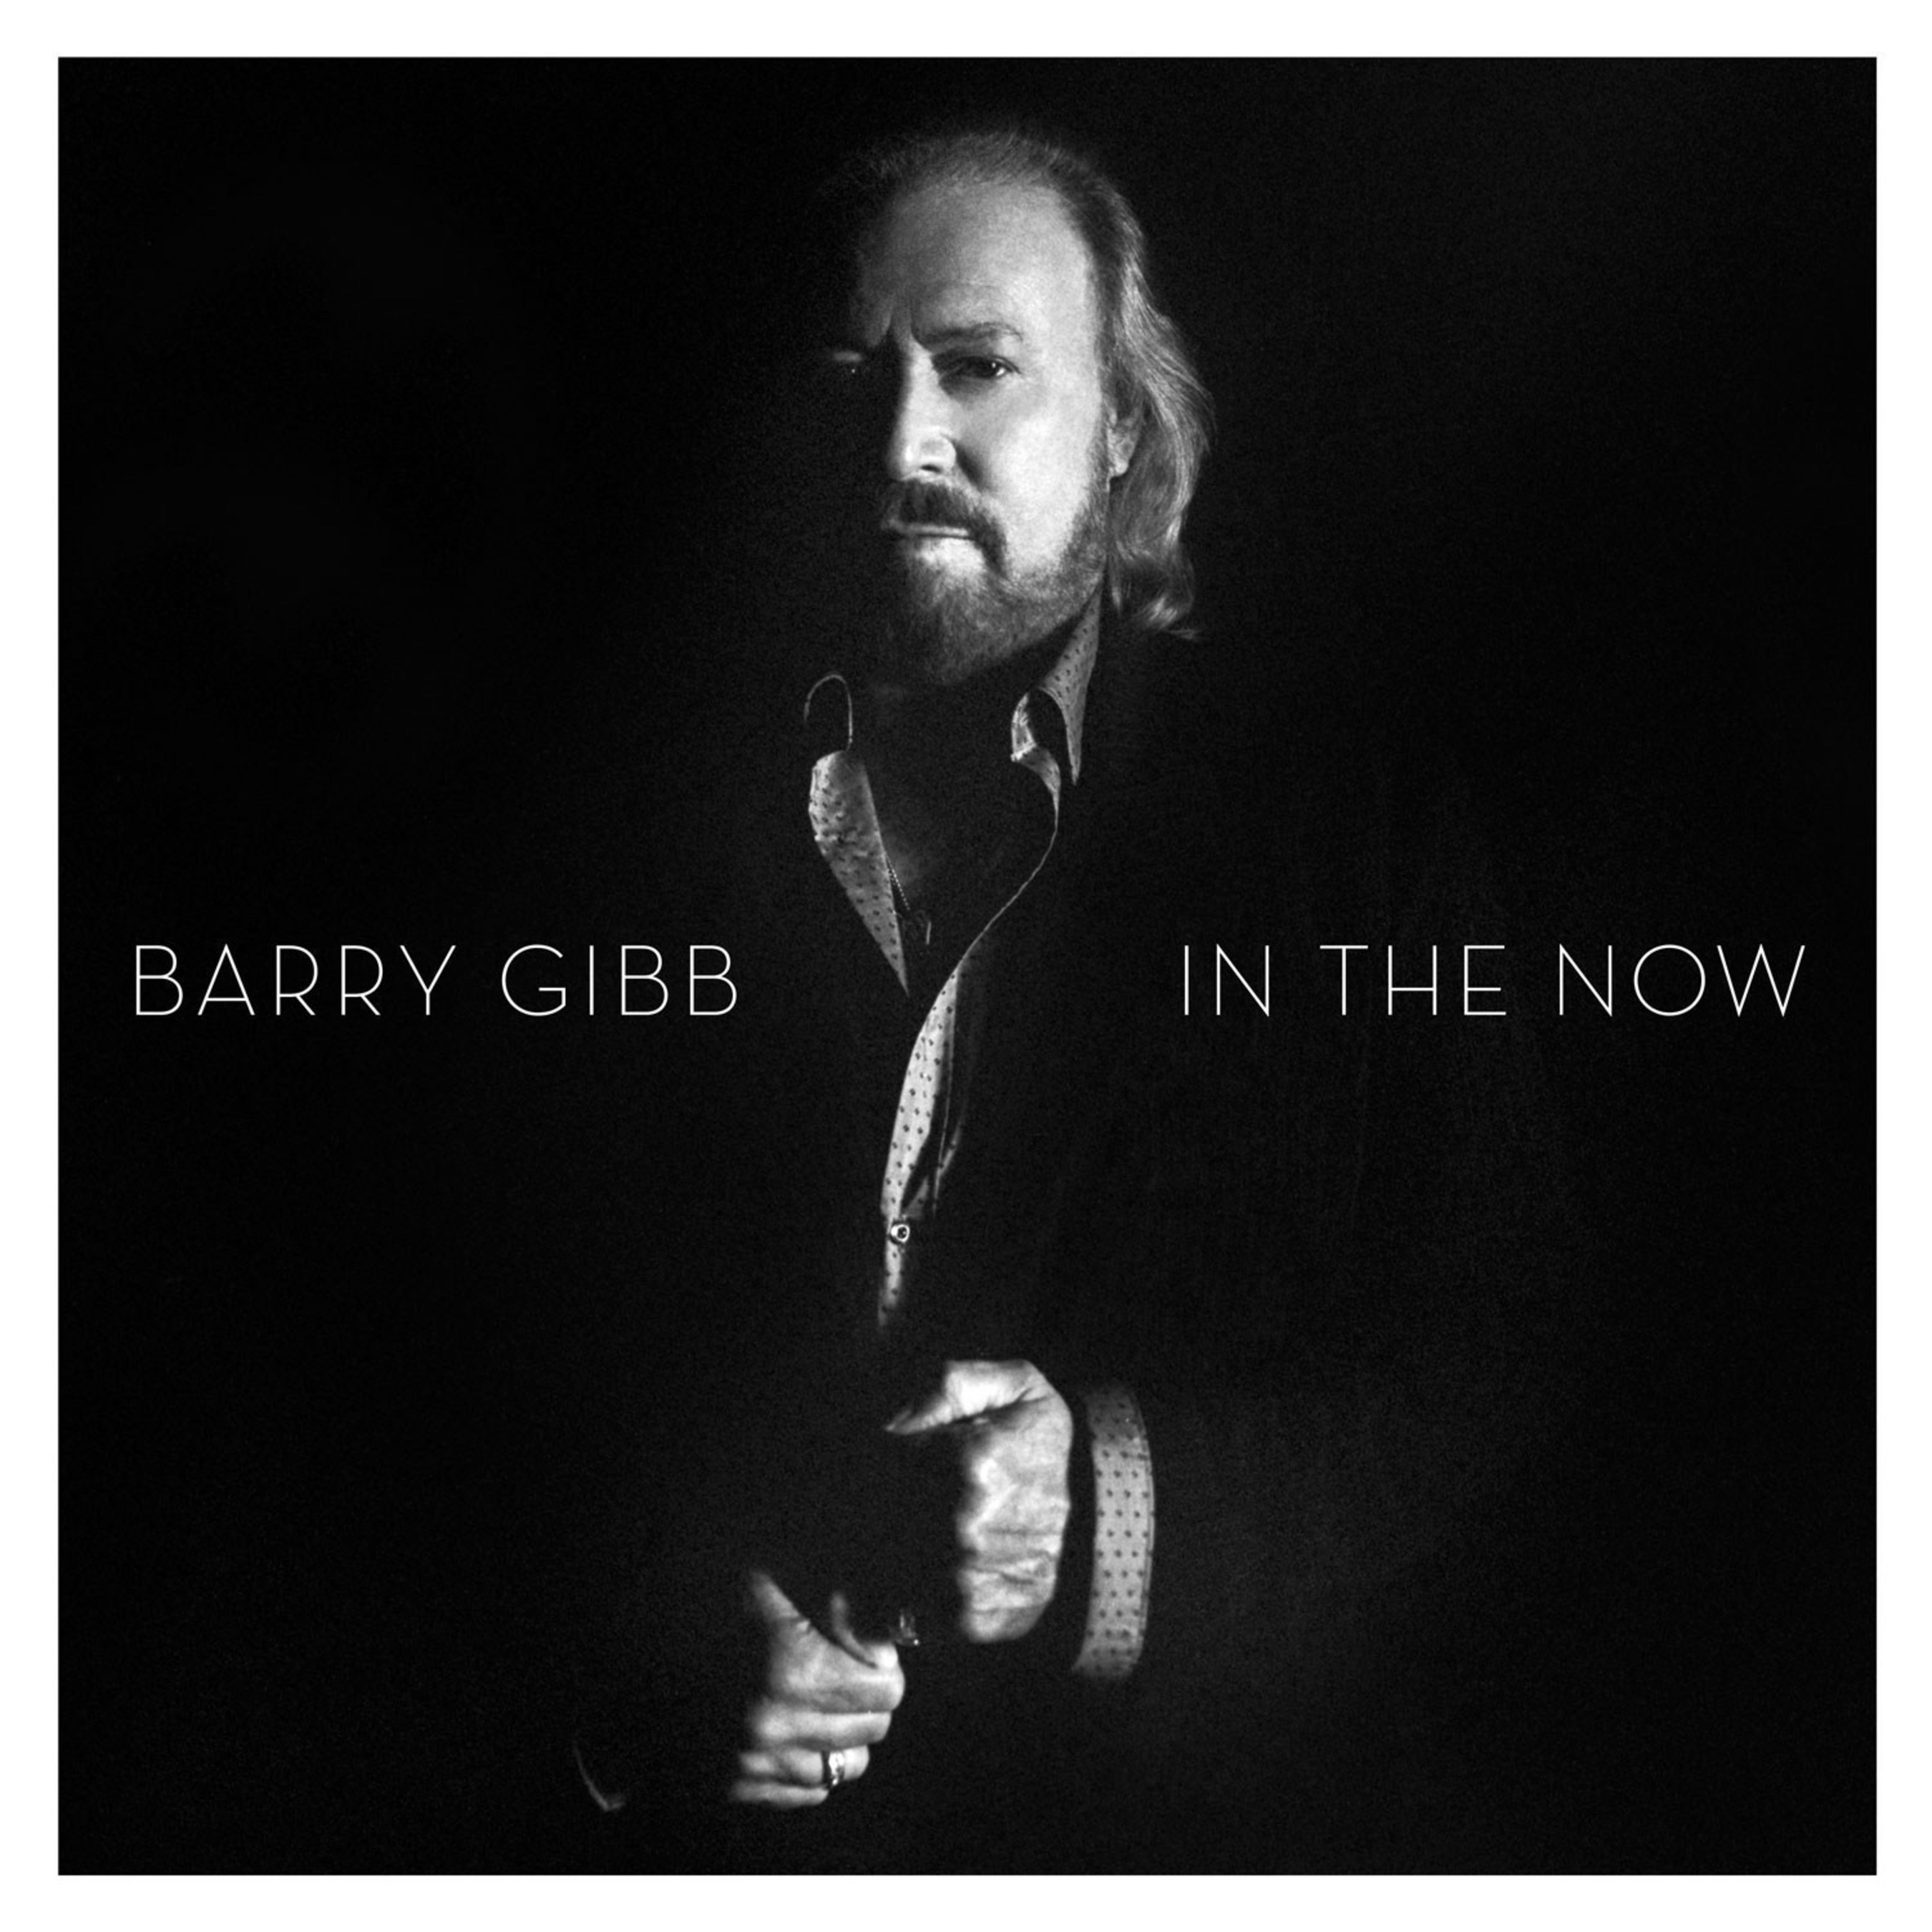 Columbia Records Announces Legendary Singer/Songwriter/Producer Barry Gibb To Release First Solo Album Involving New Material 'In The Now' On October 7; Available For Pre-Order Today